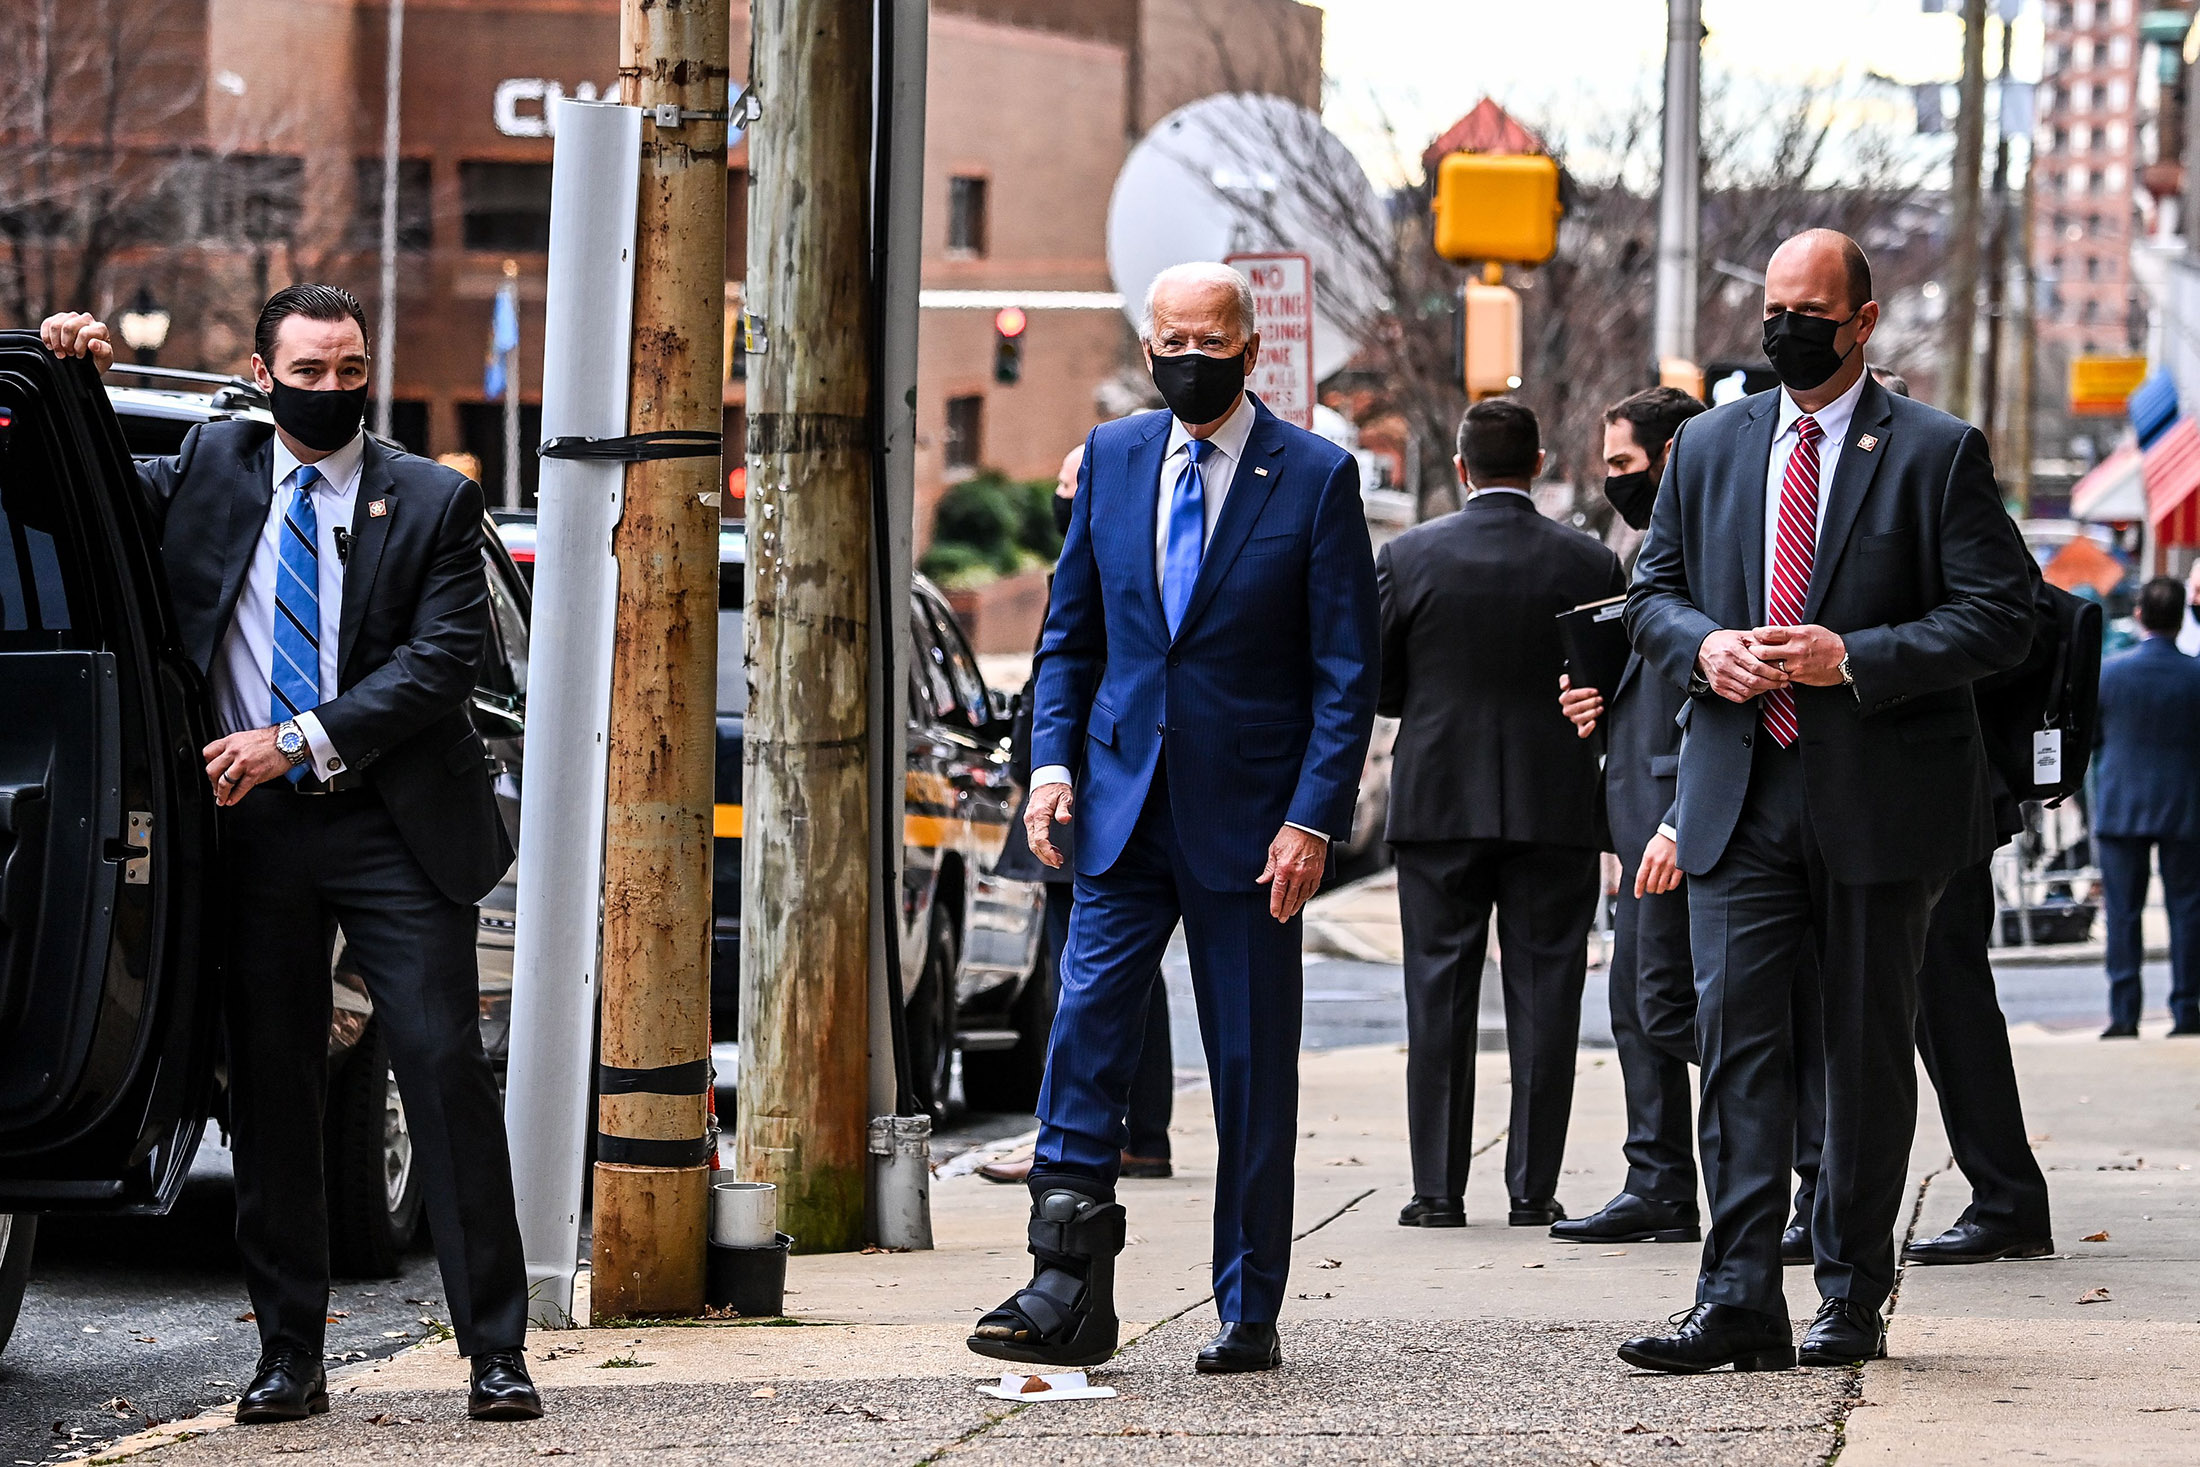 U.S. President-elect Joe Biden departs after a press conference at The Queen Theater in Wilmington, Delaware, on December 1.